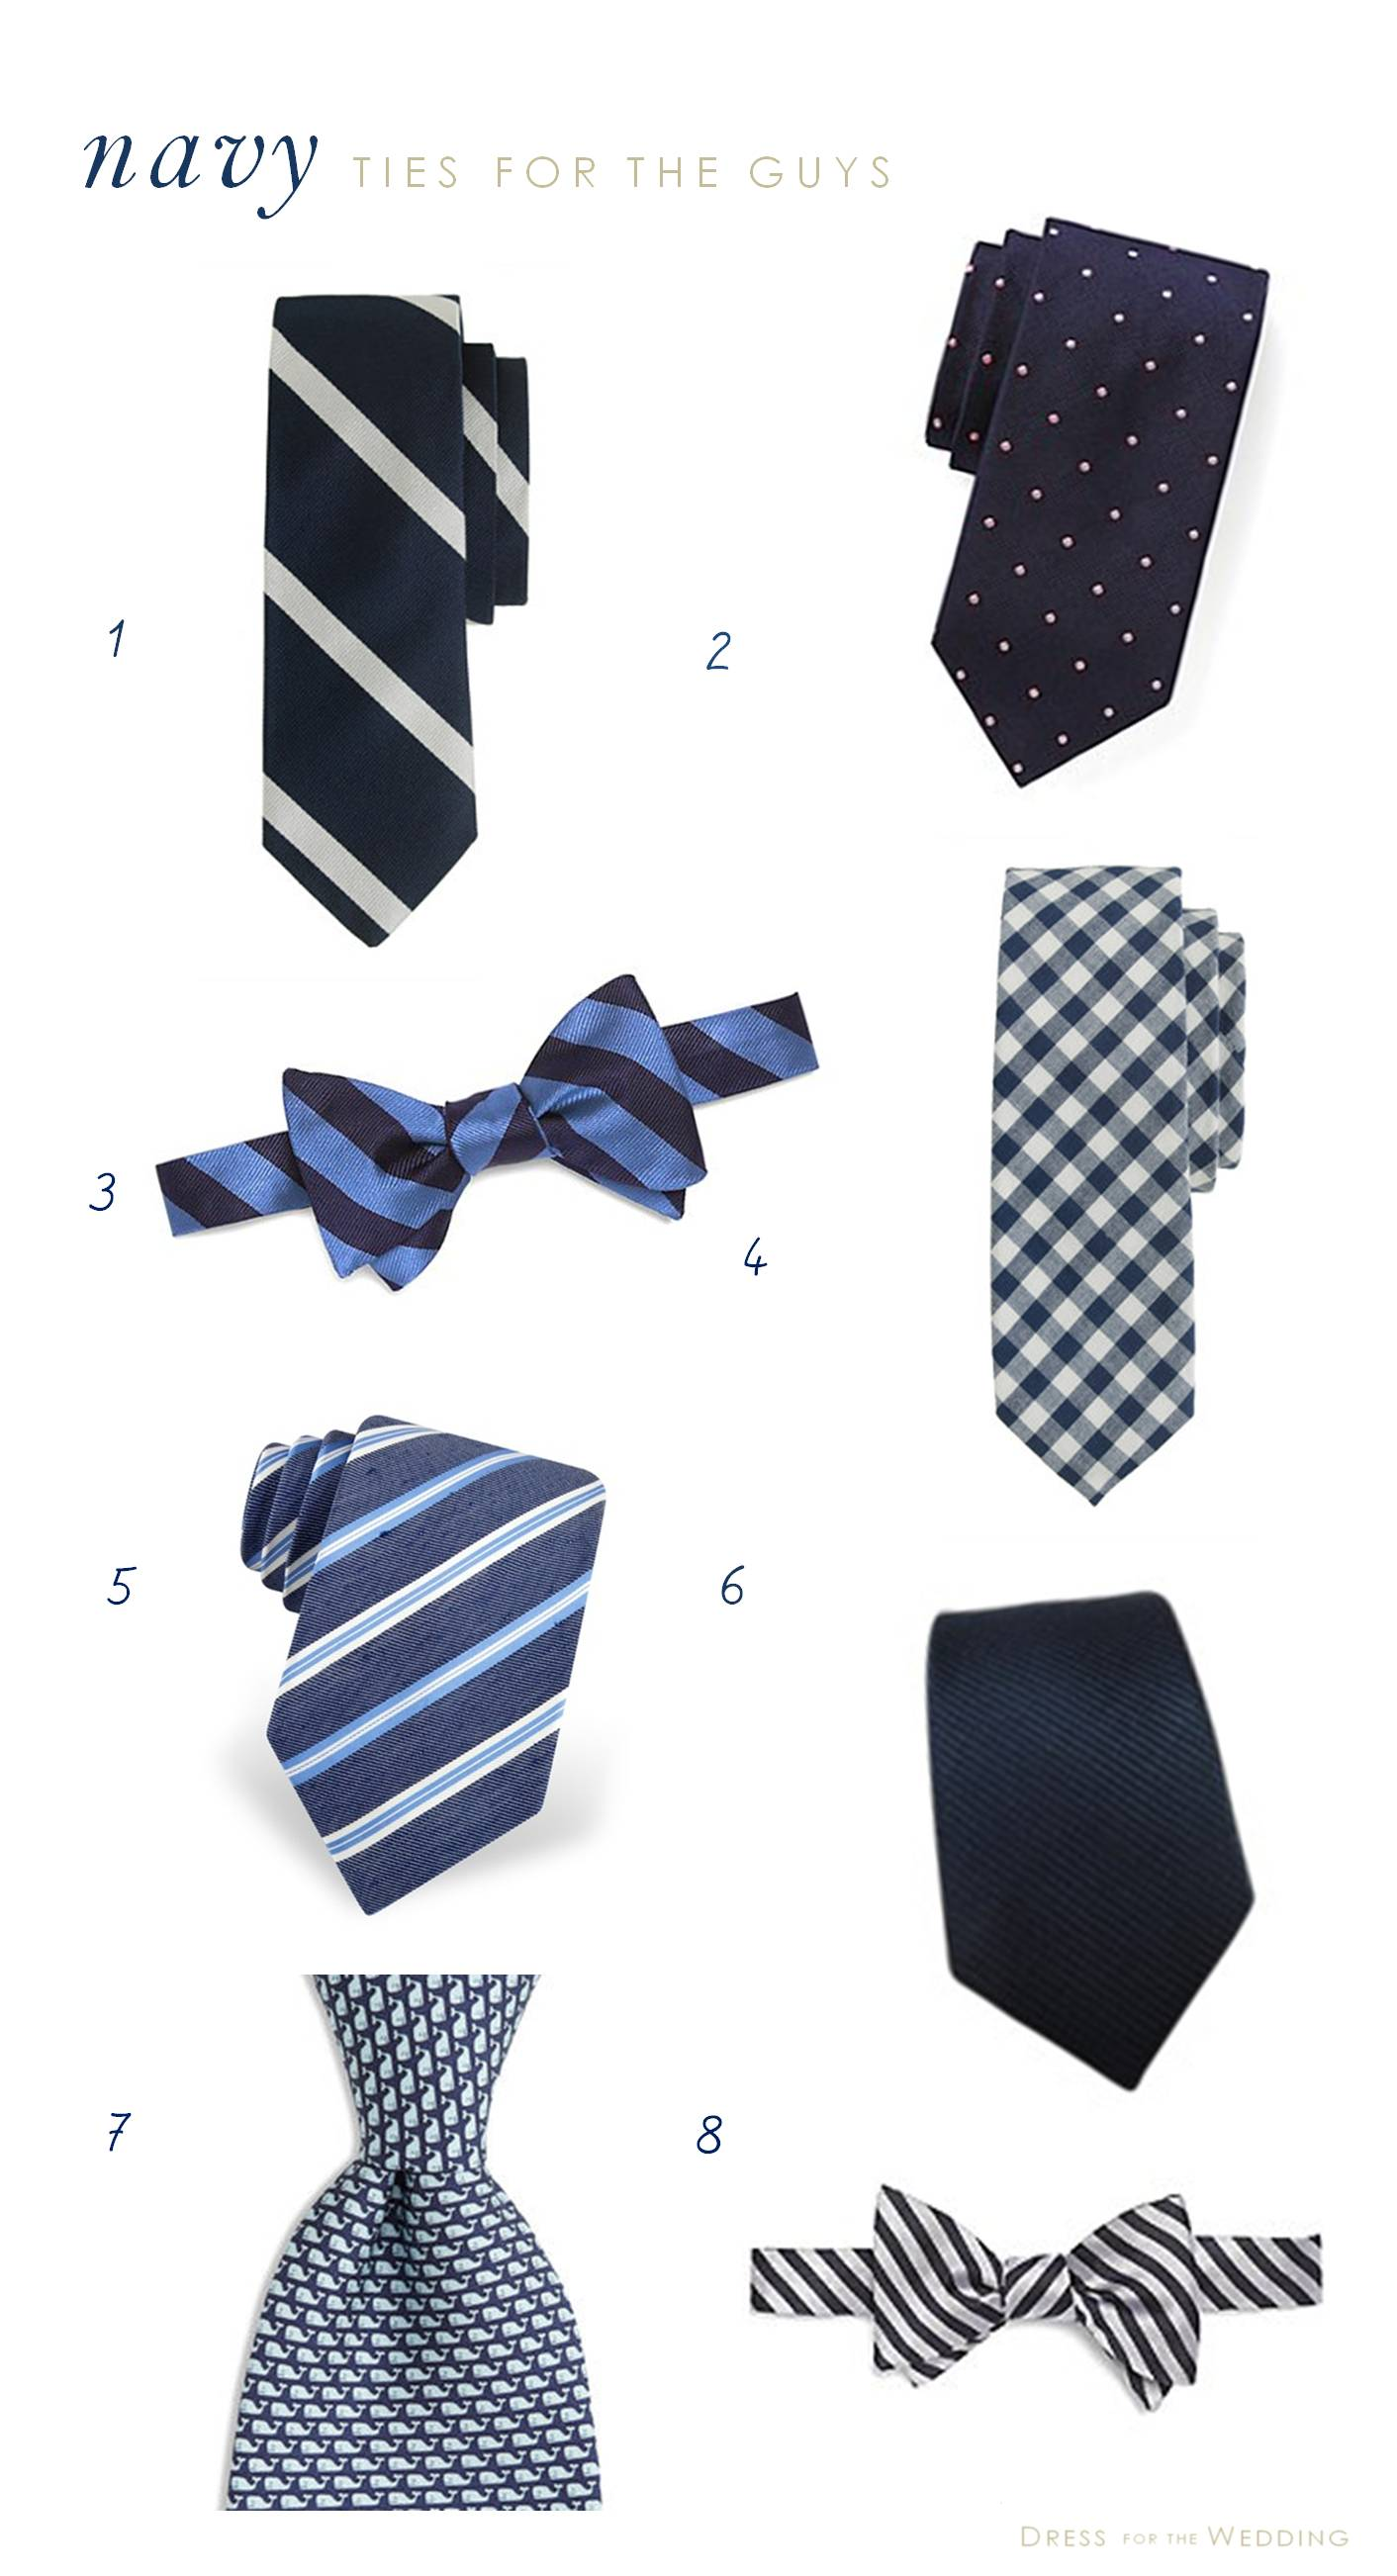 Navy Ties for Groomsmen